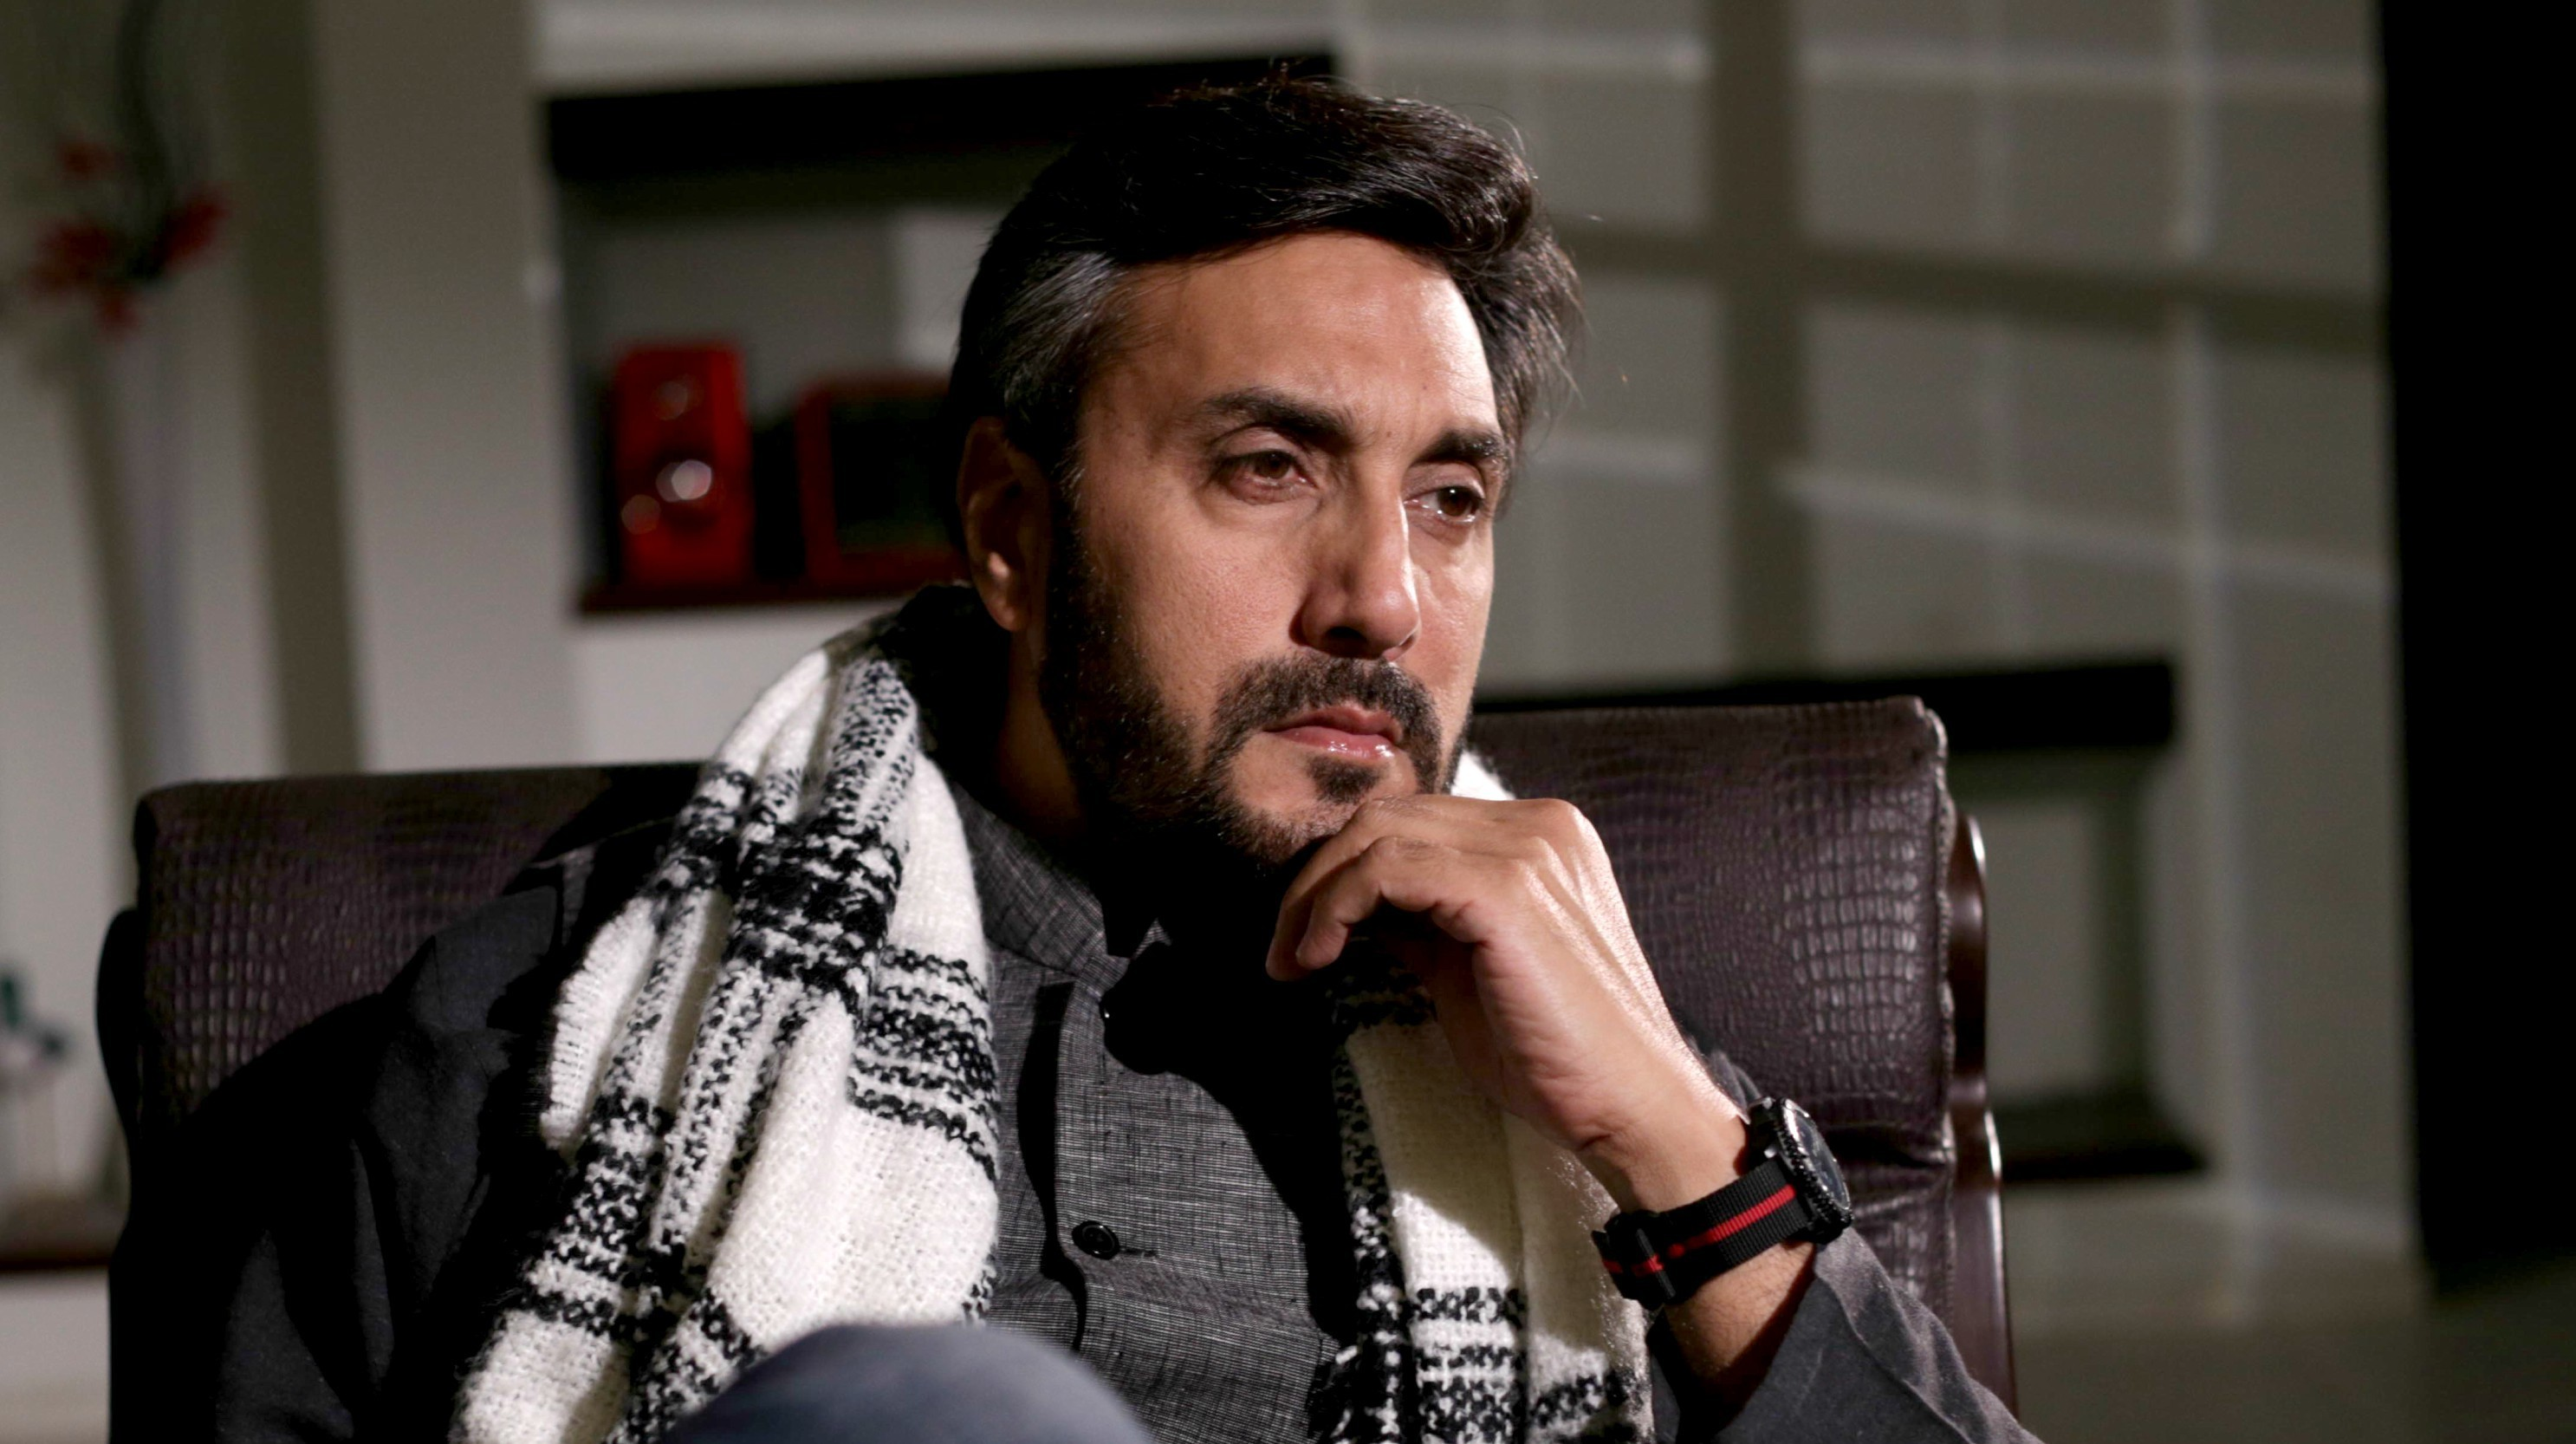 Adnan Siddiqui put out a balanced statement regarding India's actions in Kashmir.